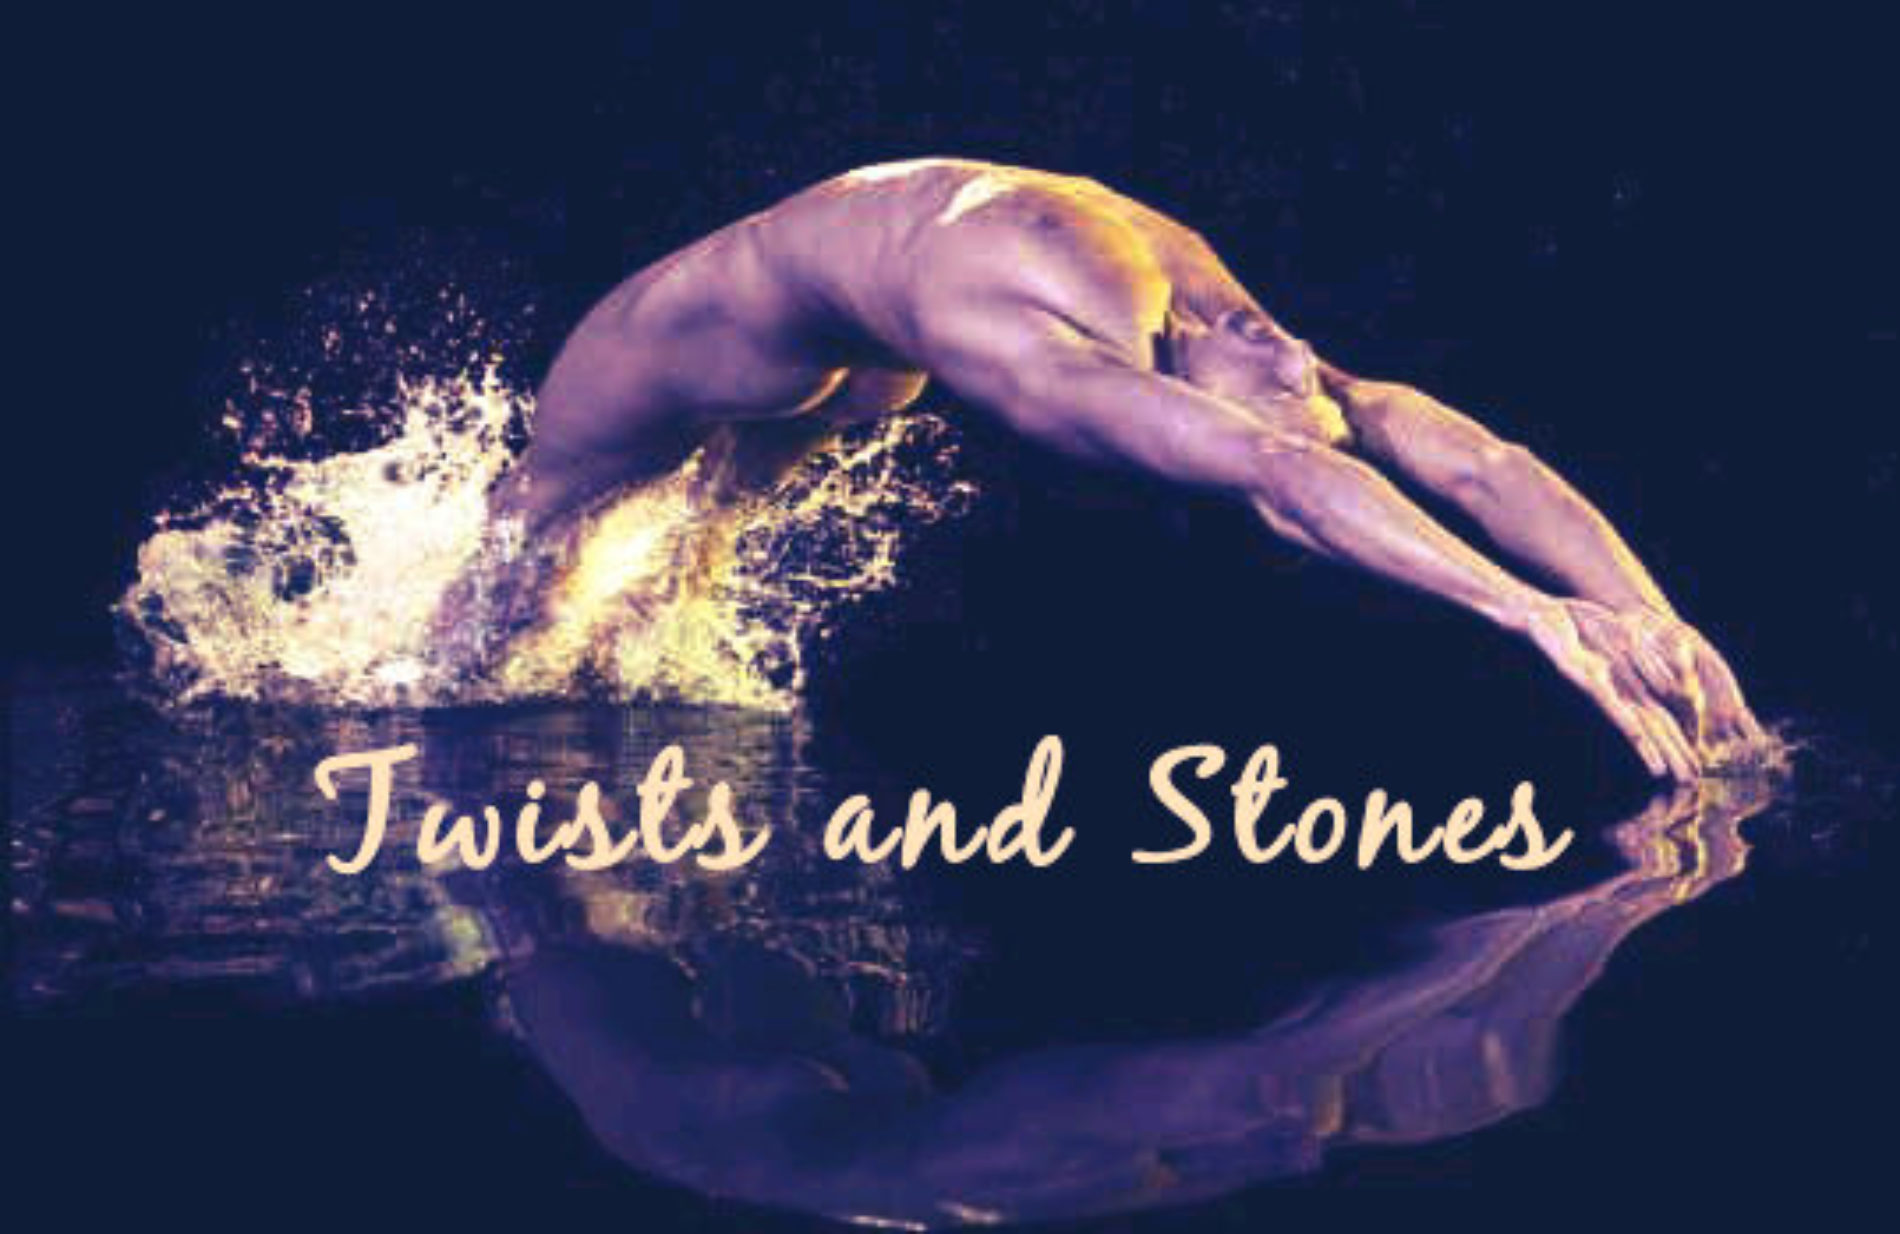 TWISTS AND STONES (Episode 8)